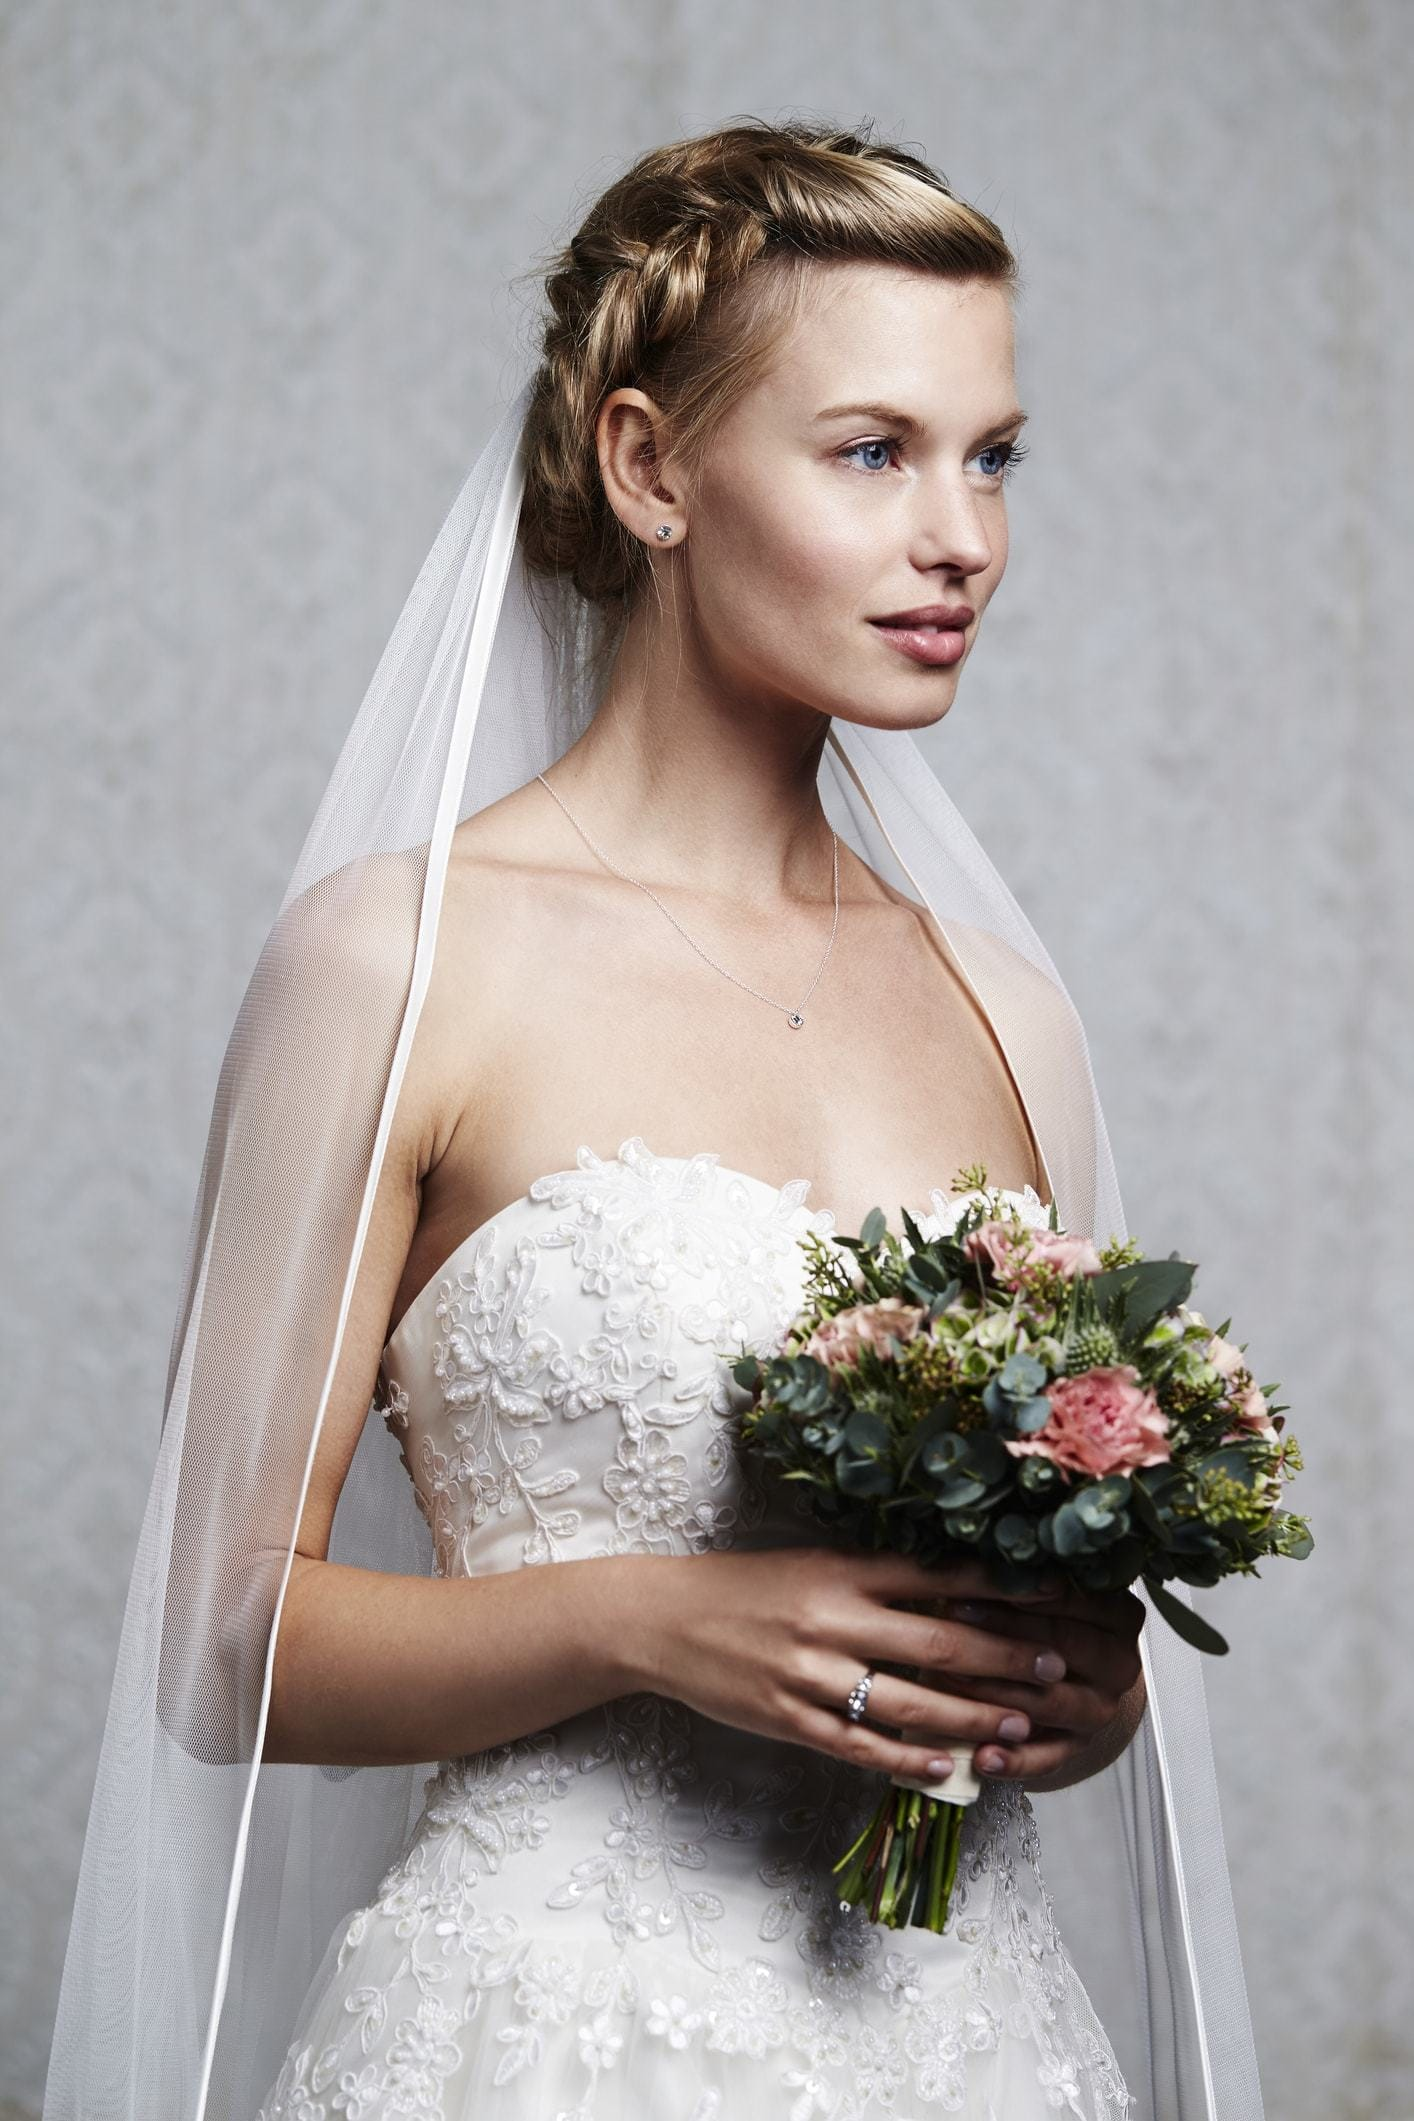 2018 Top Wedding Hairstyles For Amazing Bridal Style! 5